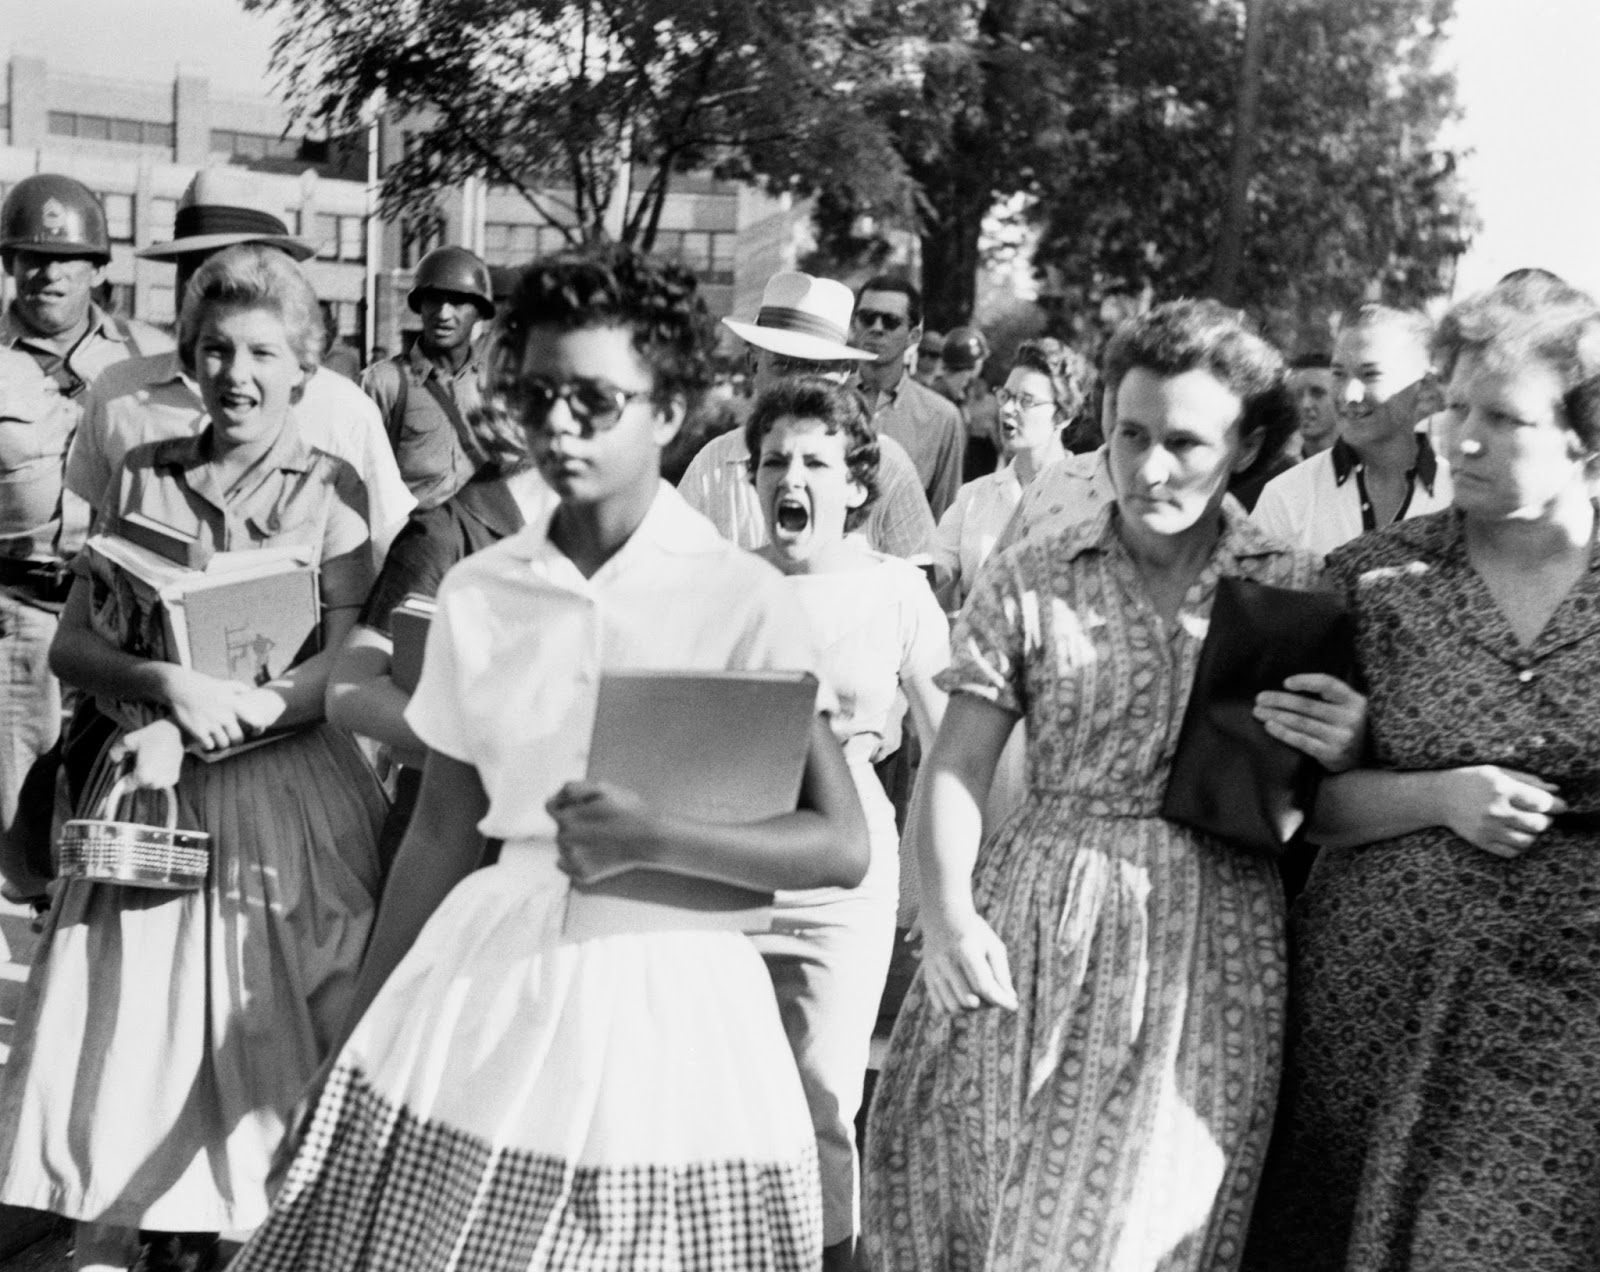 Elizabeth Eckford Running The Gauntlet Of Hatred As She Approached School Gates And Became One Most Iconic Images Twentieth Century